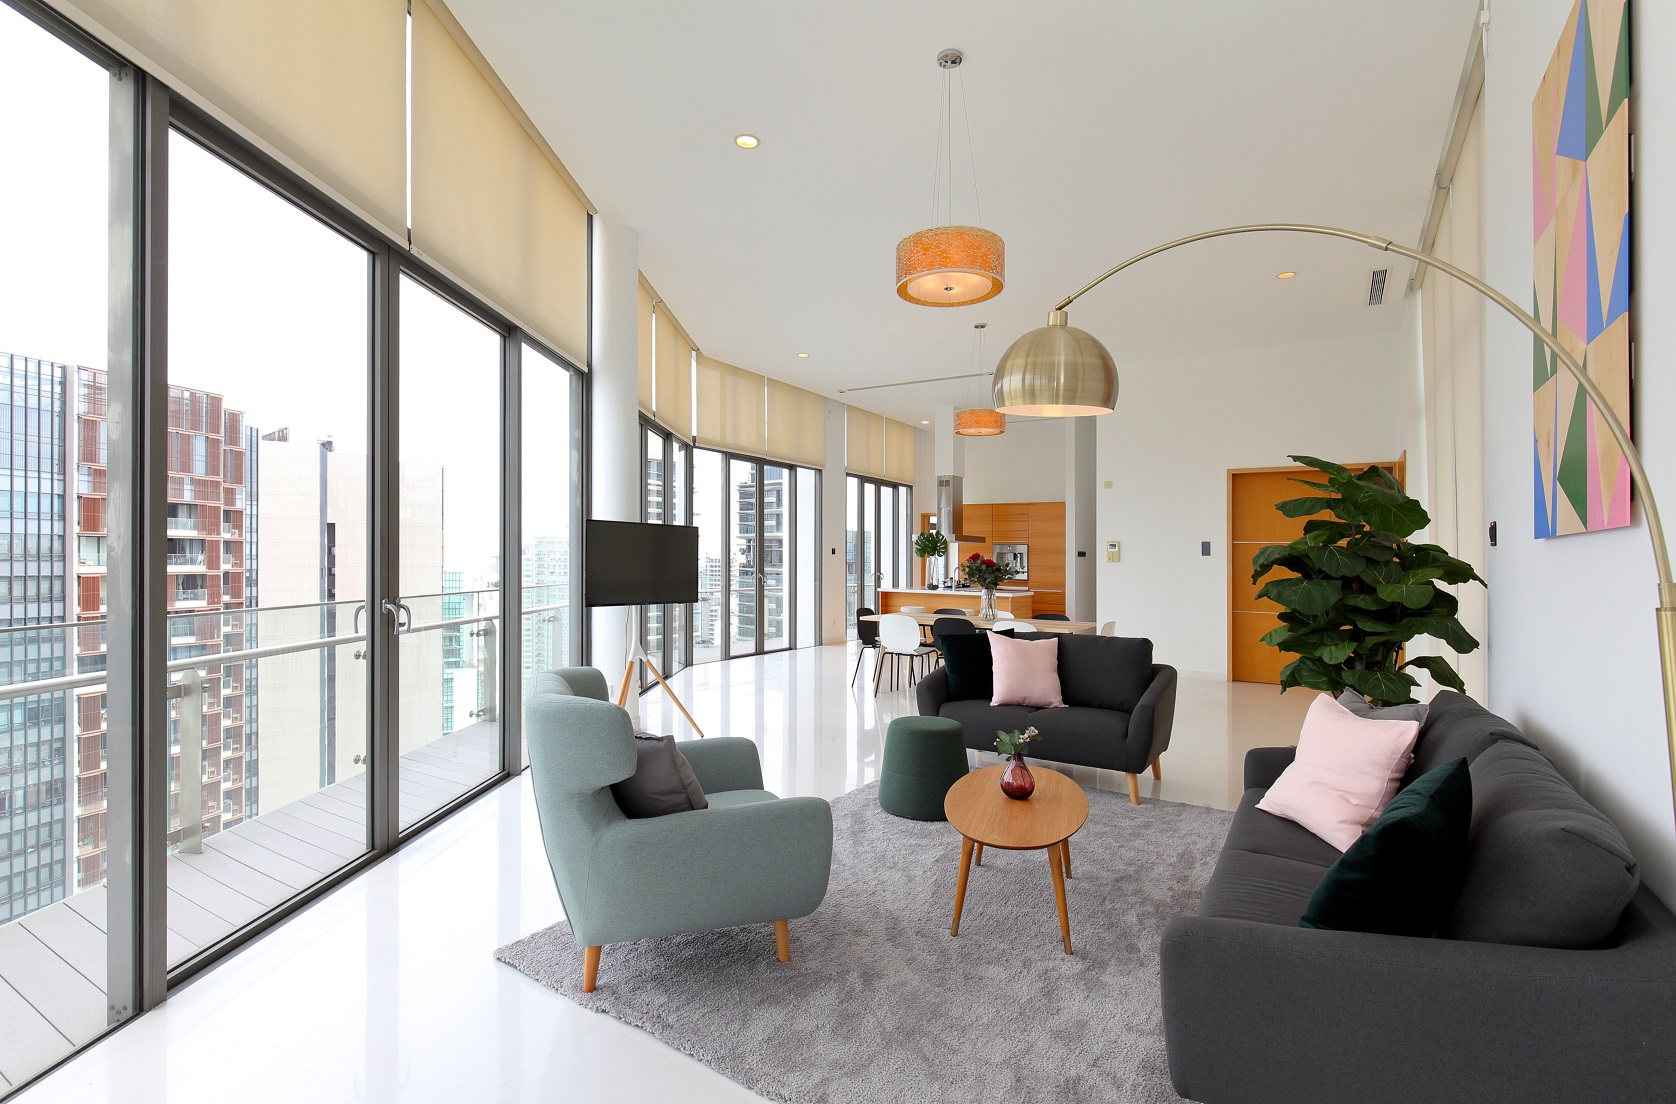 THE LUMOS - The living room of the four-bedroom, duplex penthouse at The Lumos which was recently furnished by Login Apartment as a co-living unit (Photo: Samuel Isaac Chua/EdgeProp Singapore)